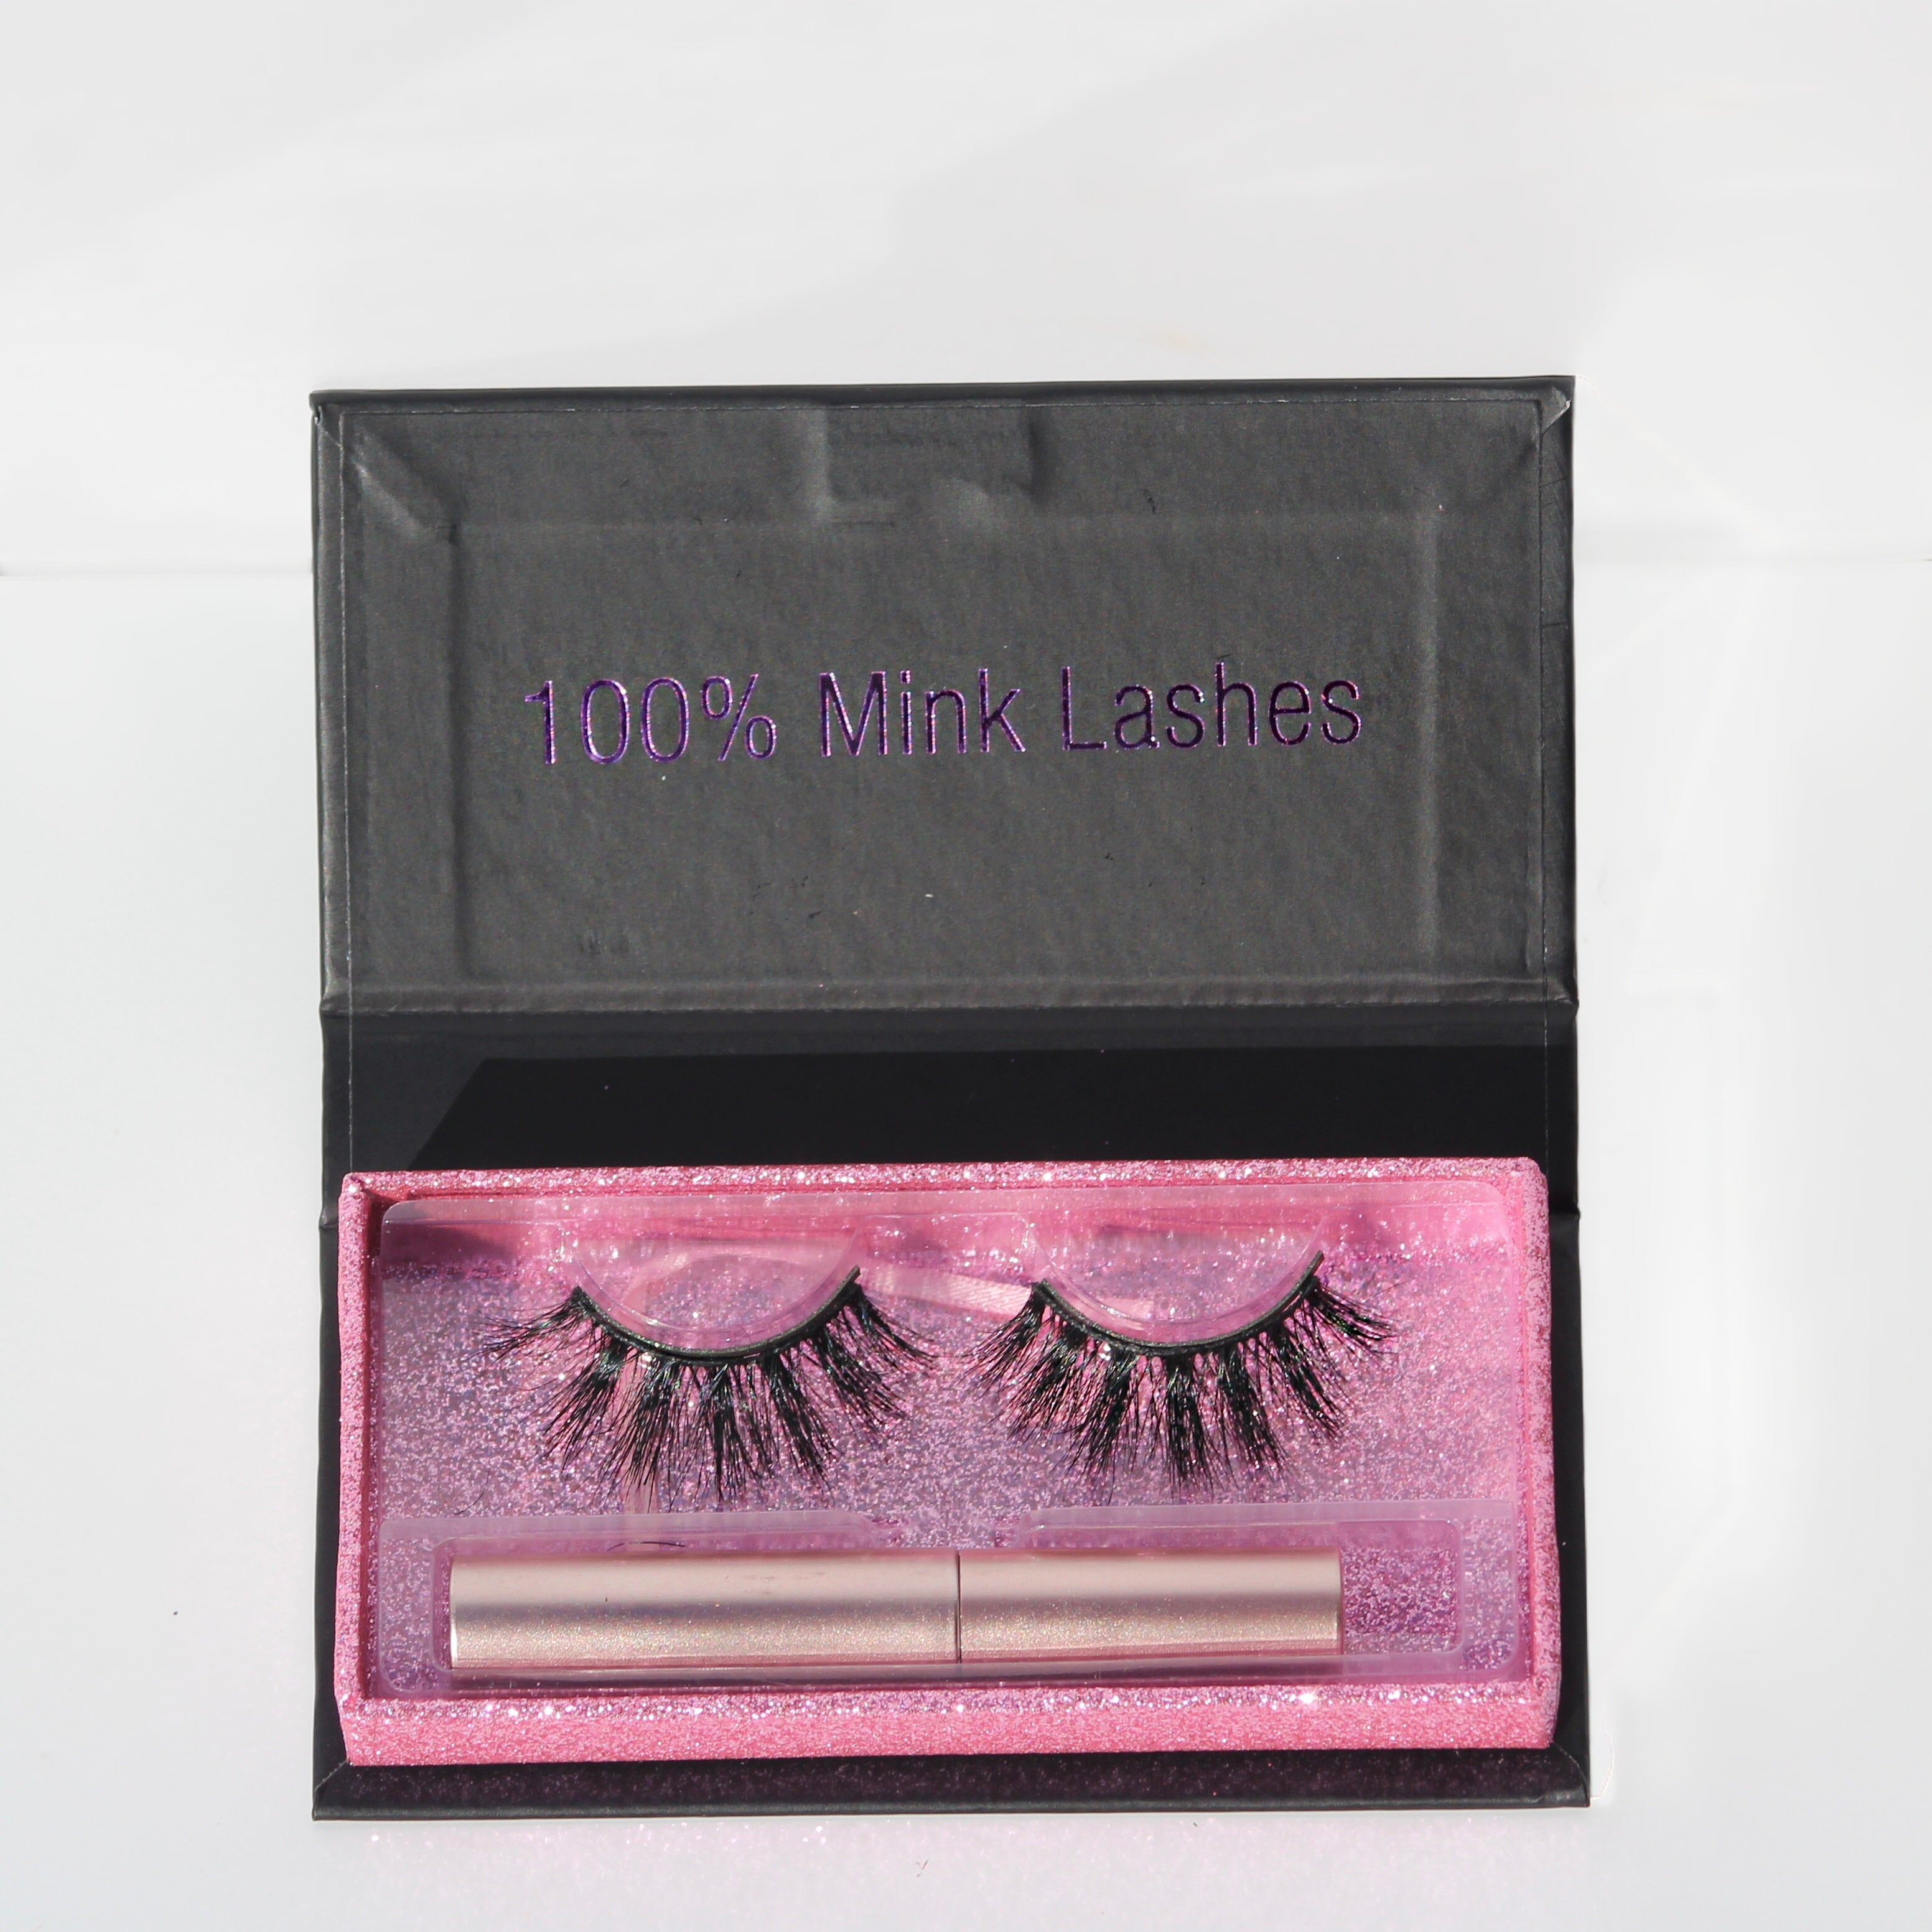 100% Mink Lashes - Dolled Up